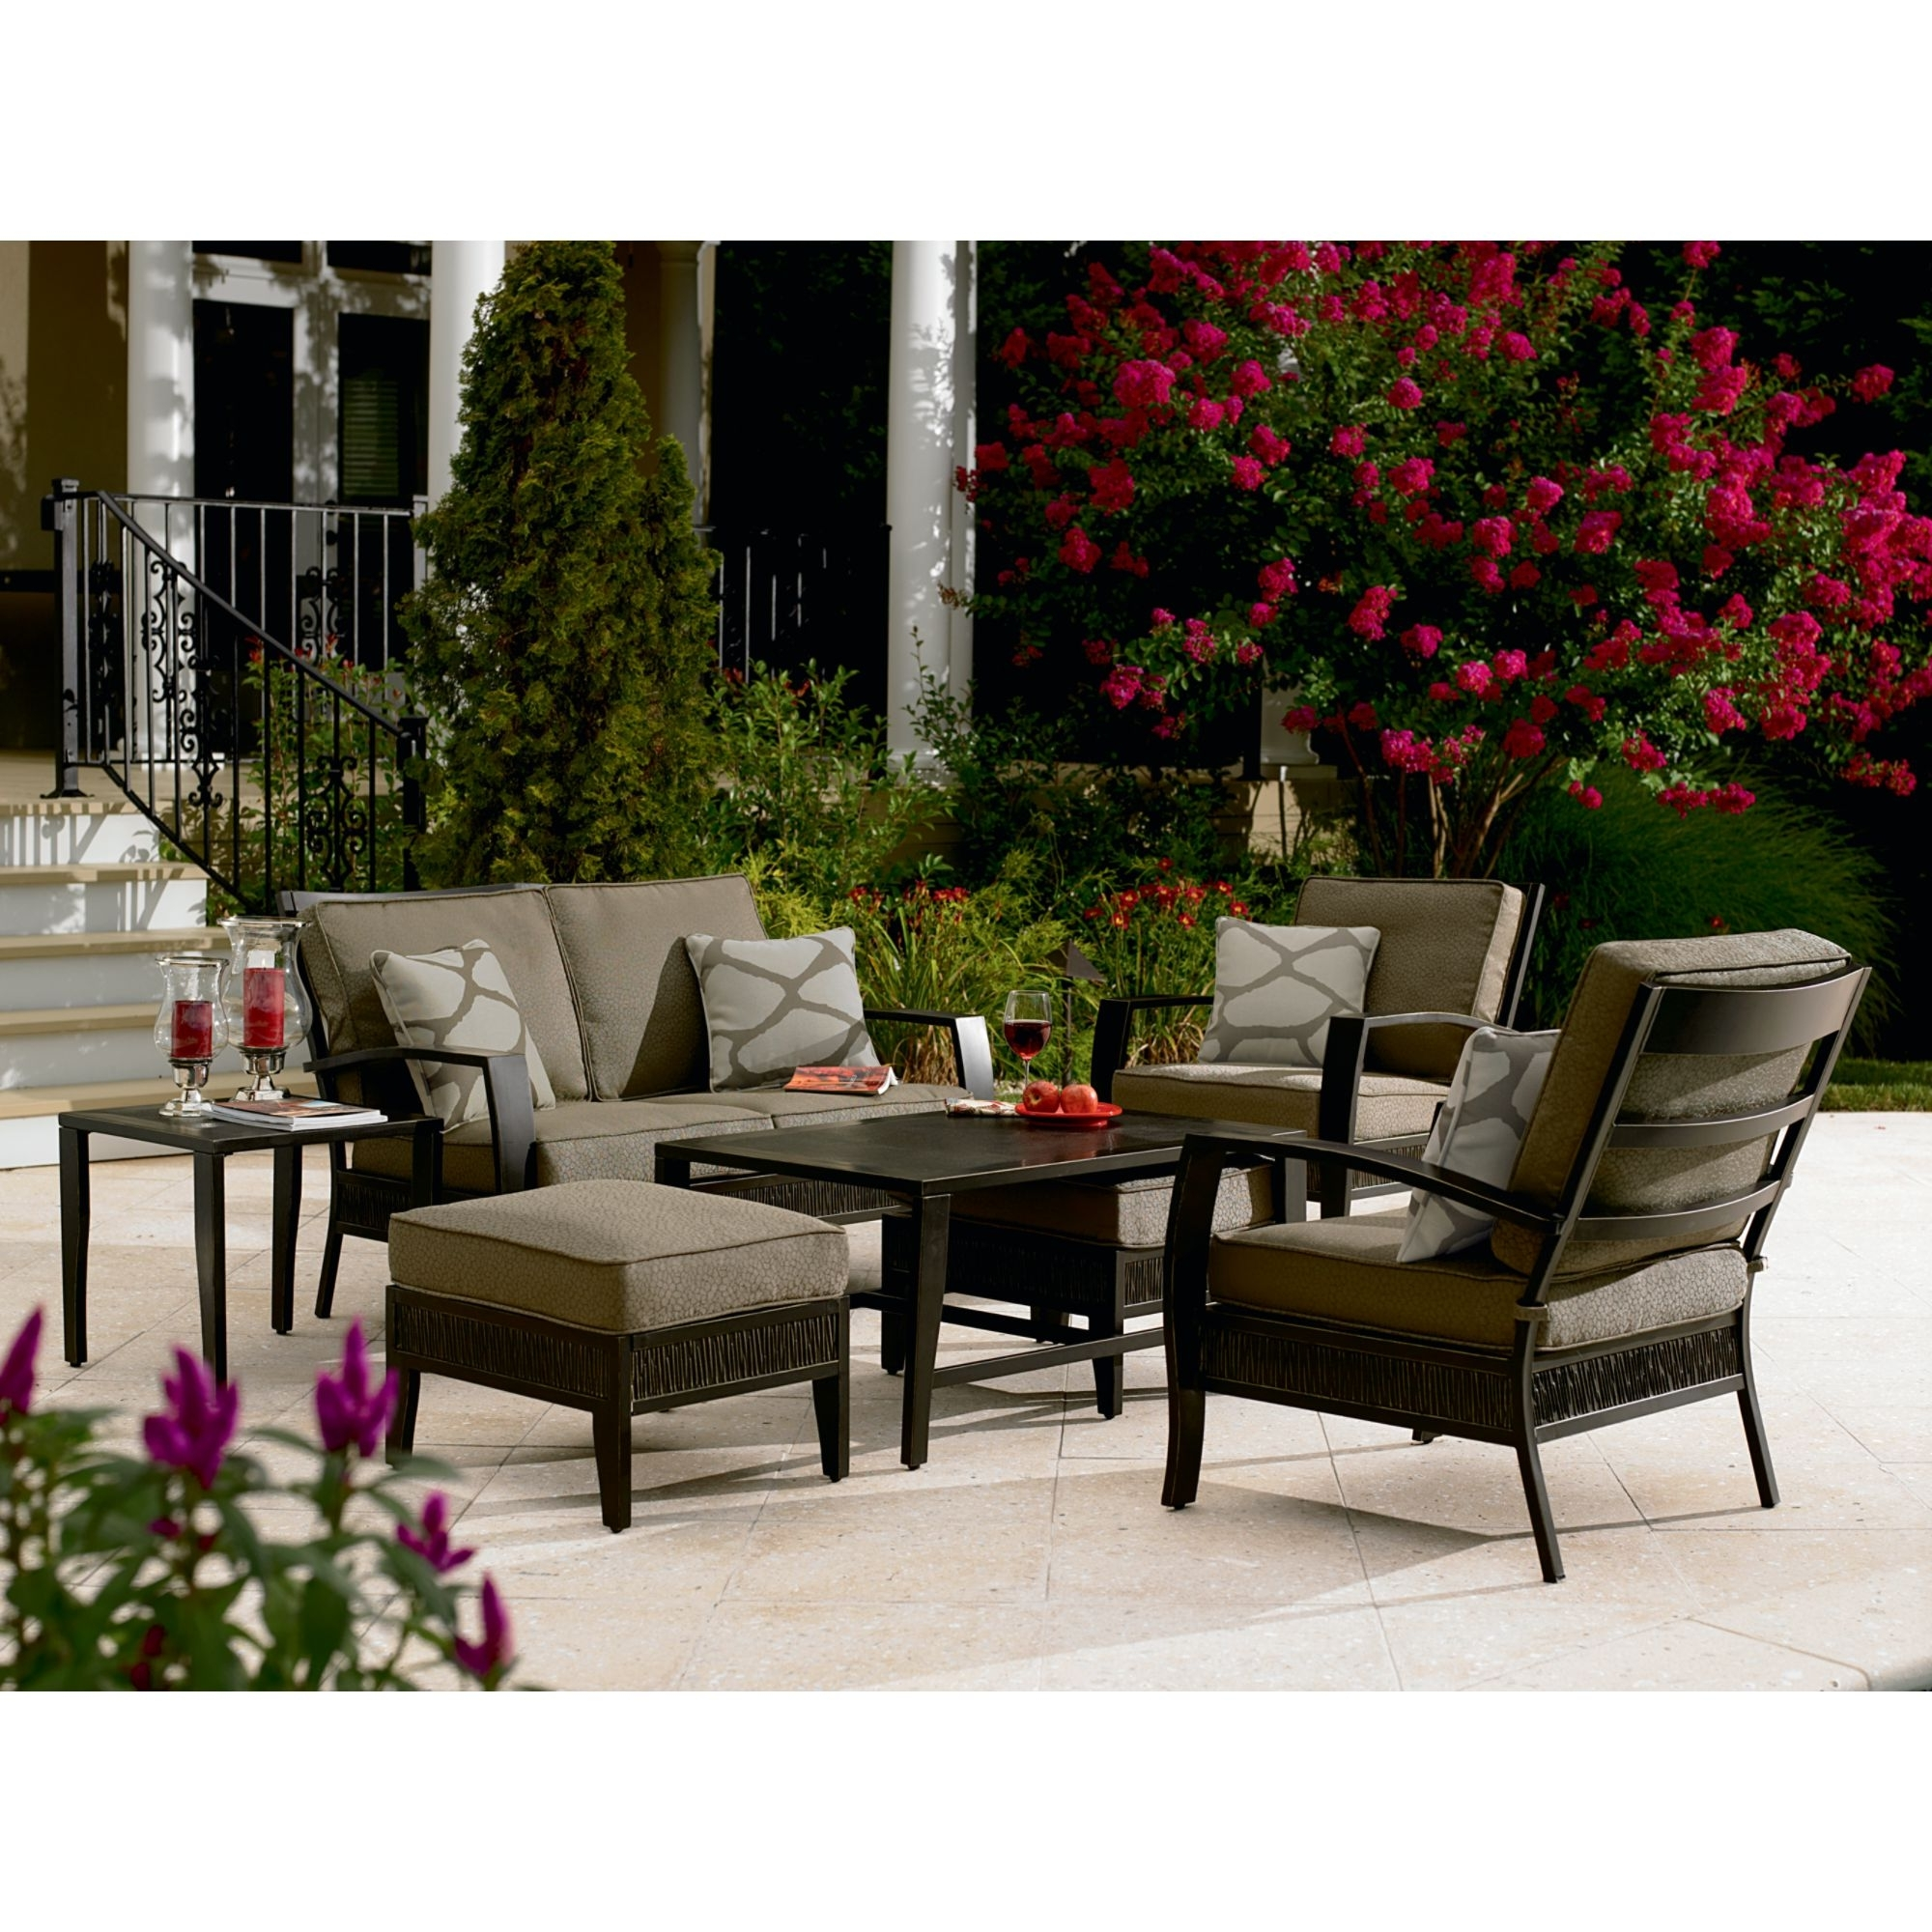 Current Patio Conversation Sets At Sears For Patio Screen Cover Tags : Patio Conversation Sets With Fire Pit (View 3 of 20)